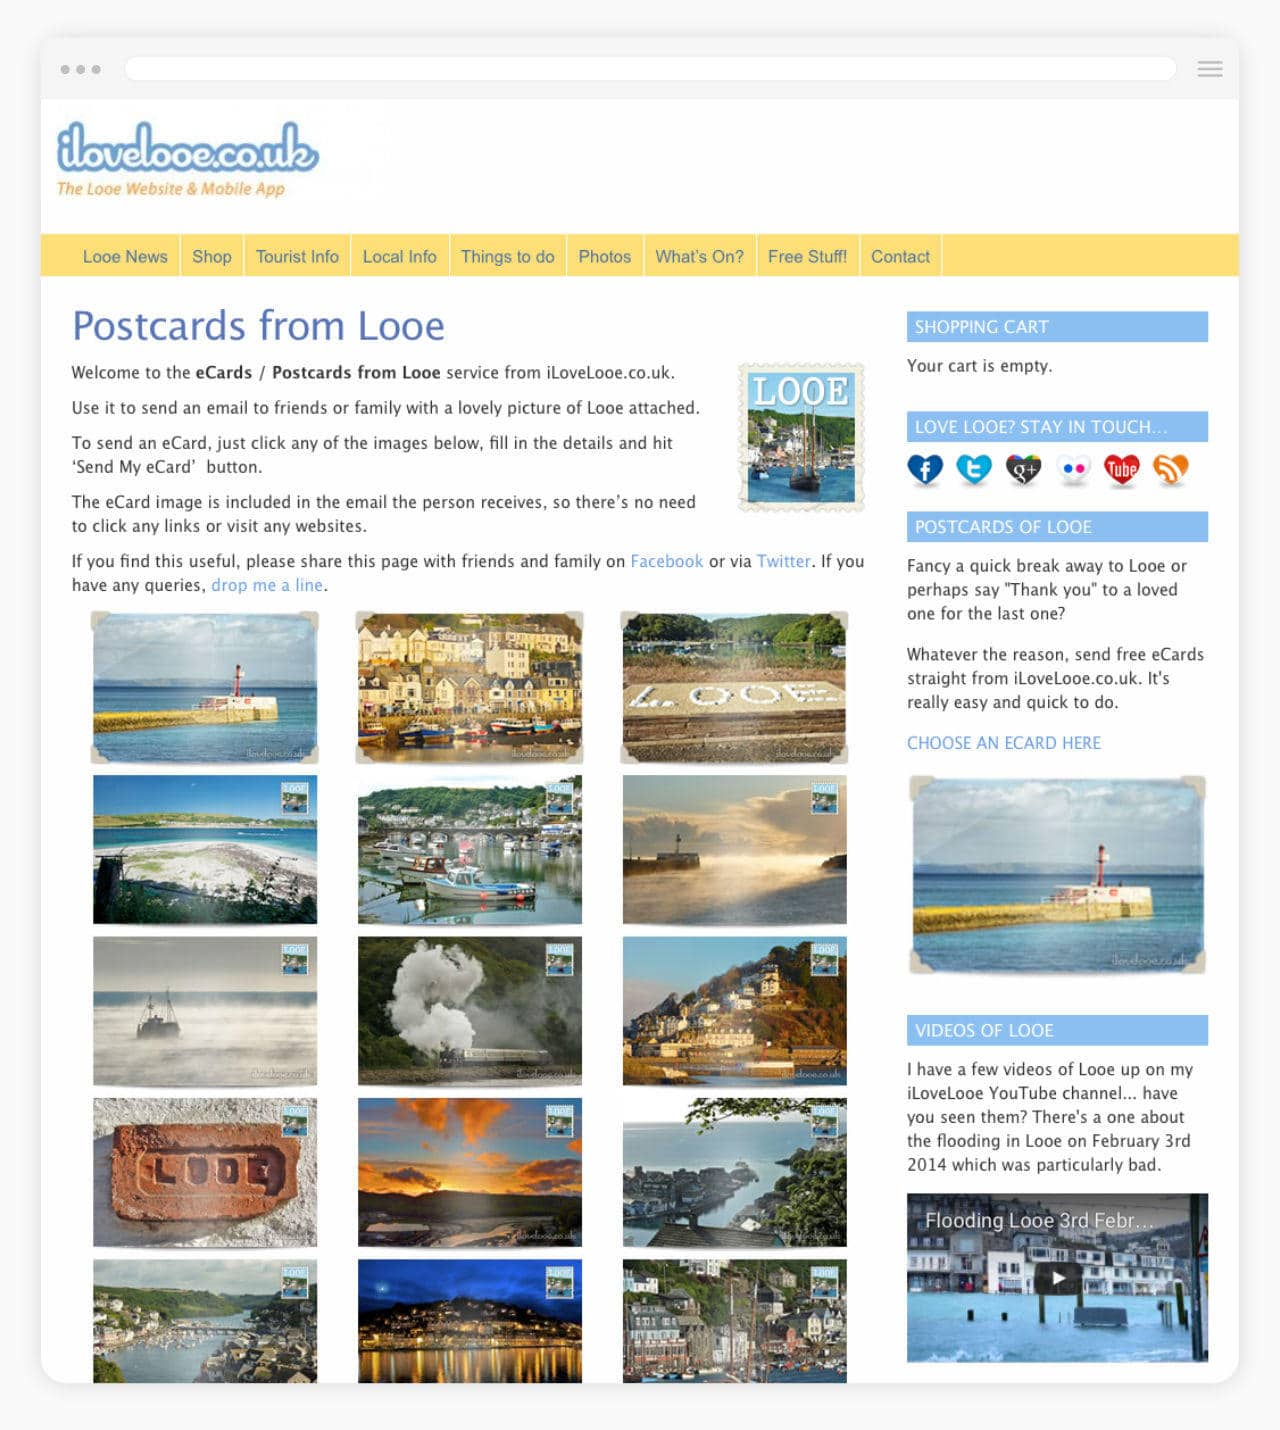 Tourism Website iLoveLooe